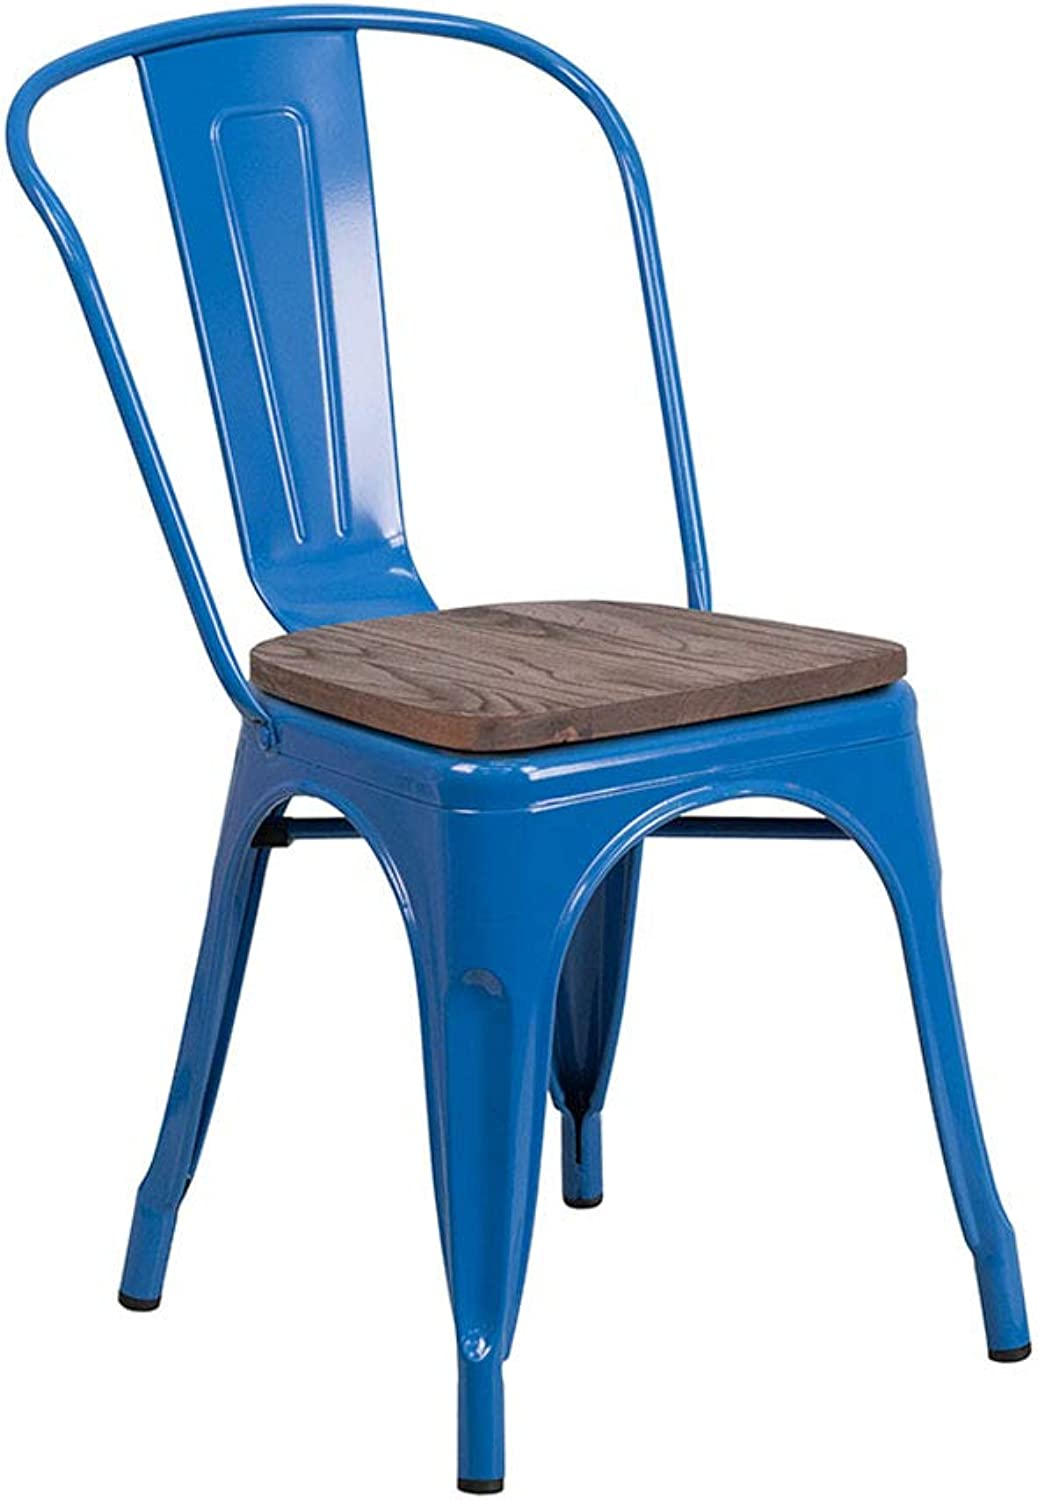 Flash Furniture CH-31230-BL-WD-GG Metal Stackable Chair with Wood Seat - bluee